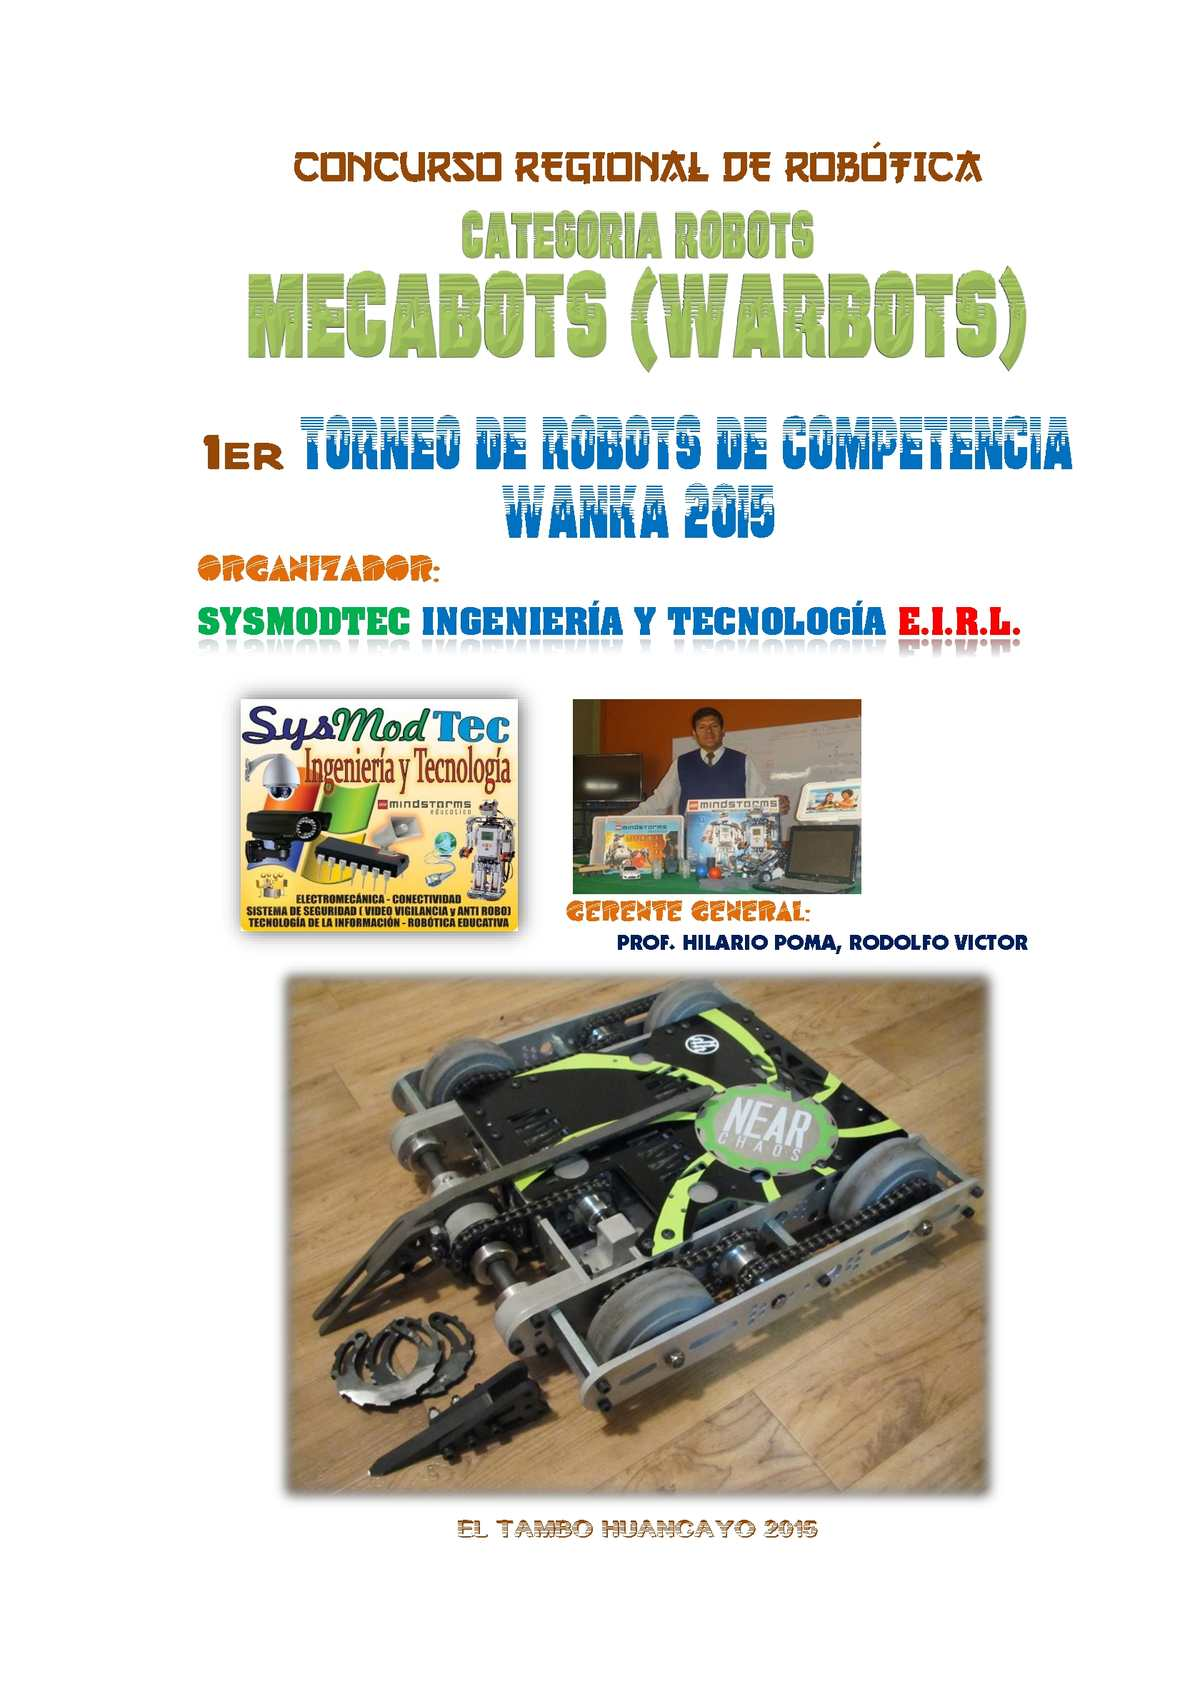 Categoria Warbot Mecabots